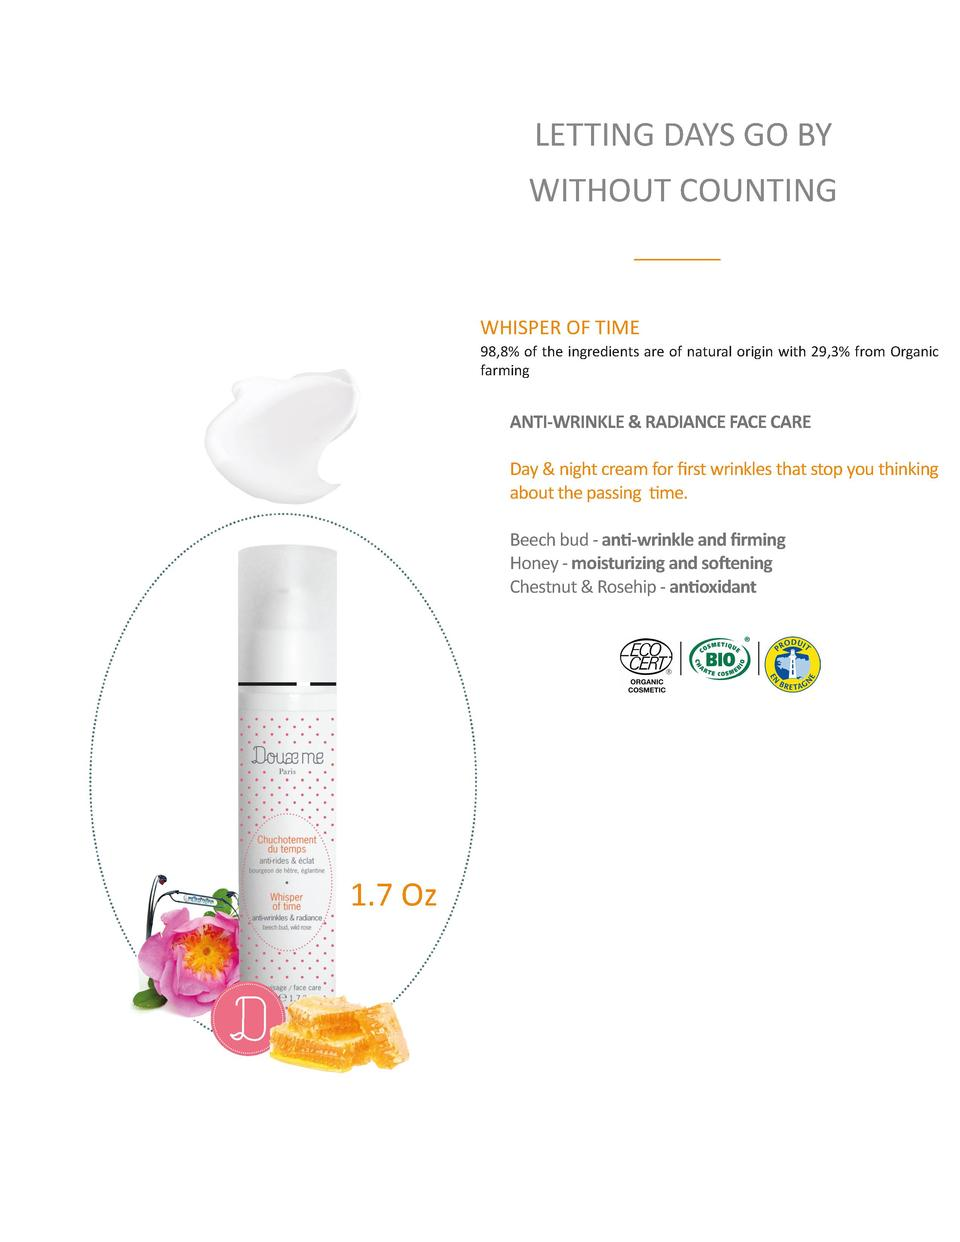 LETTING DAYS GO BY WITHOUT COUNTING  WHISPER OF TIME 98,8  of the ingredients are of natural origin with 29,3  from Organi...